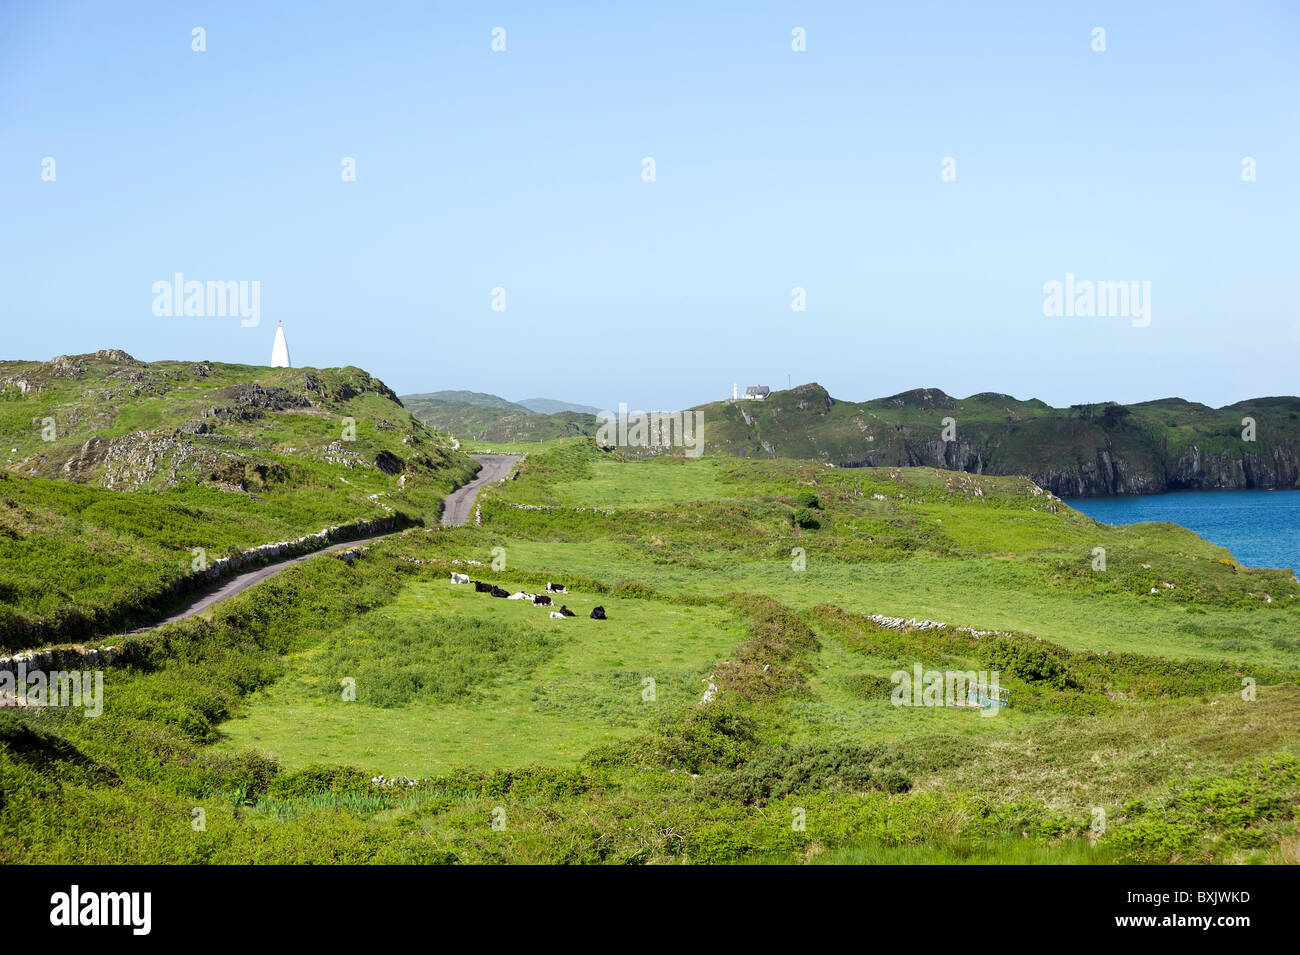 Baltimore, Grafschaft-Korken, Irland Stockbild